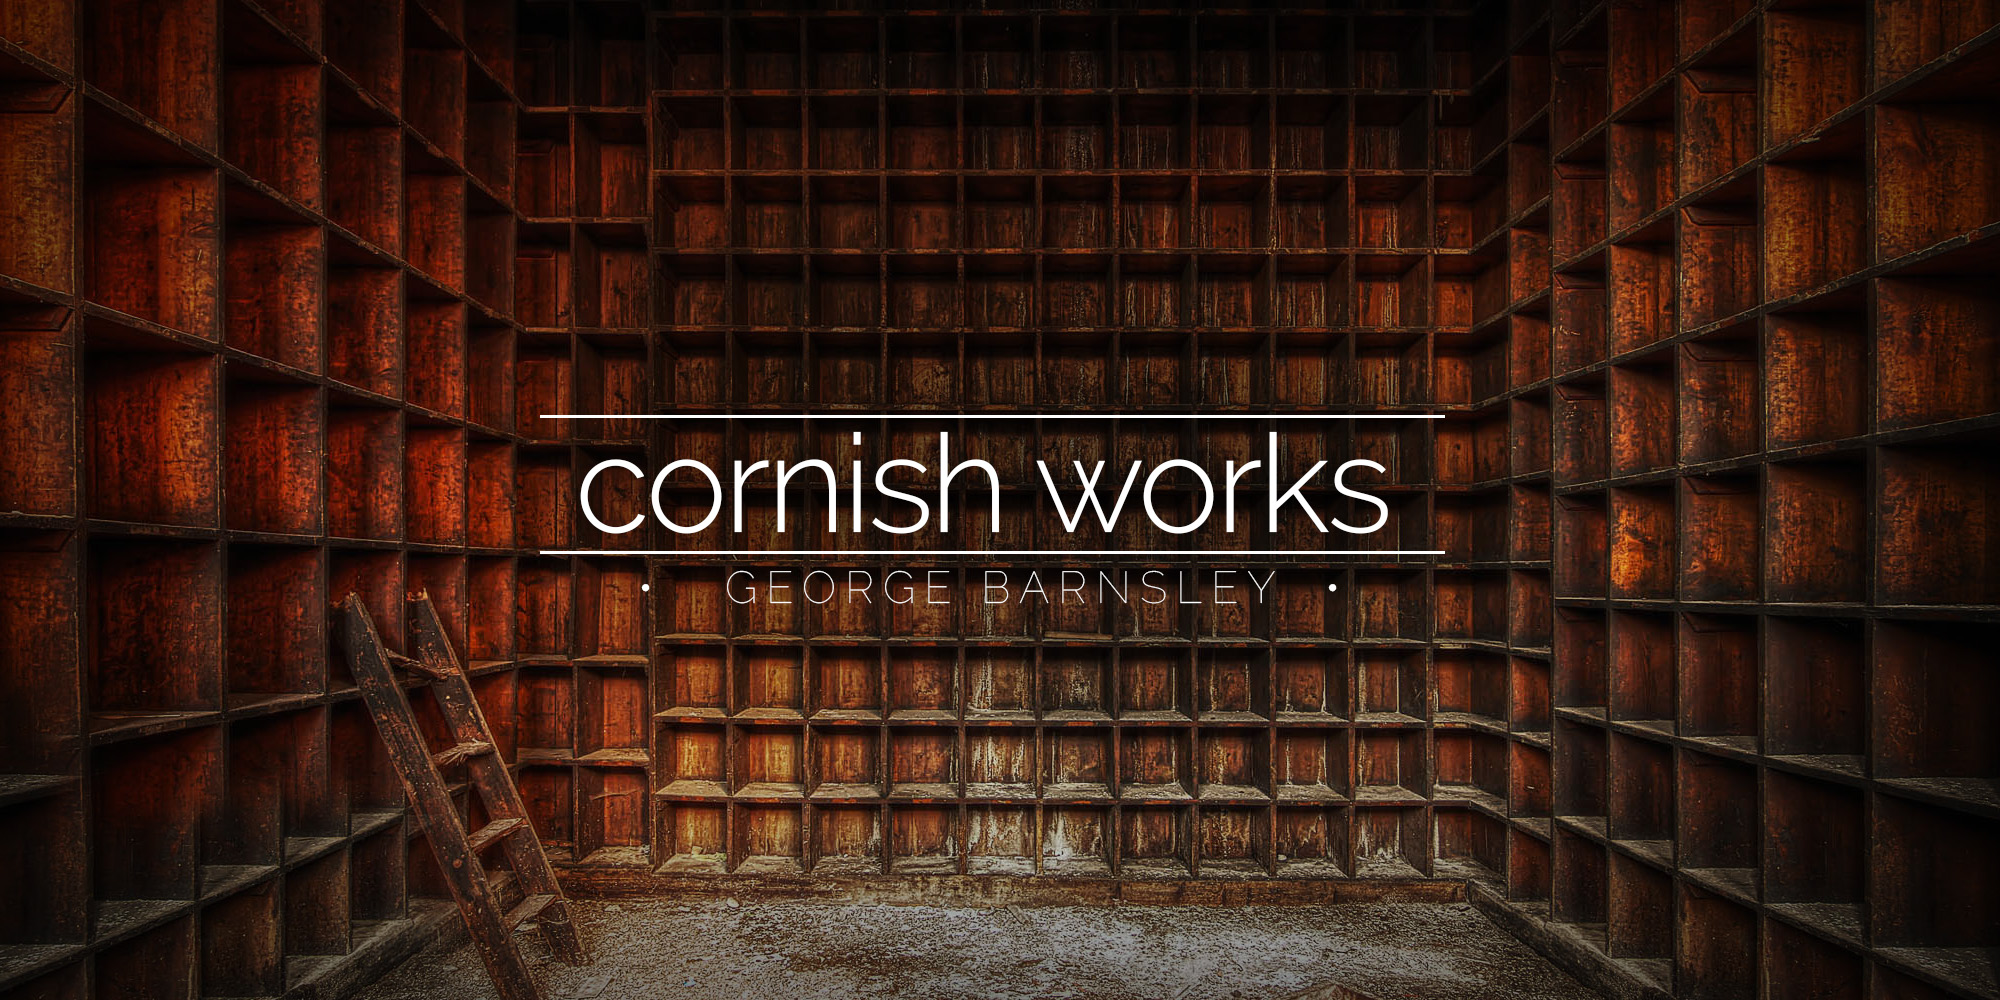 George Barnsley & Sons Cornish Works